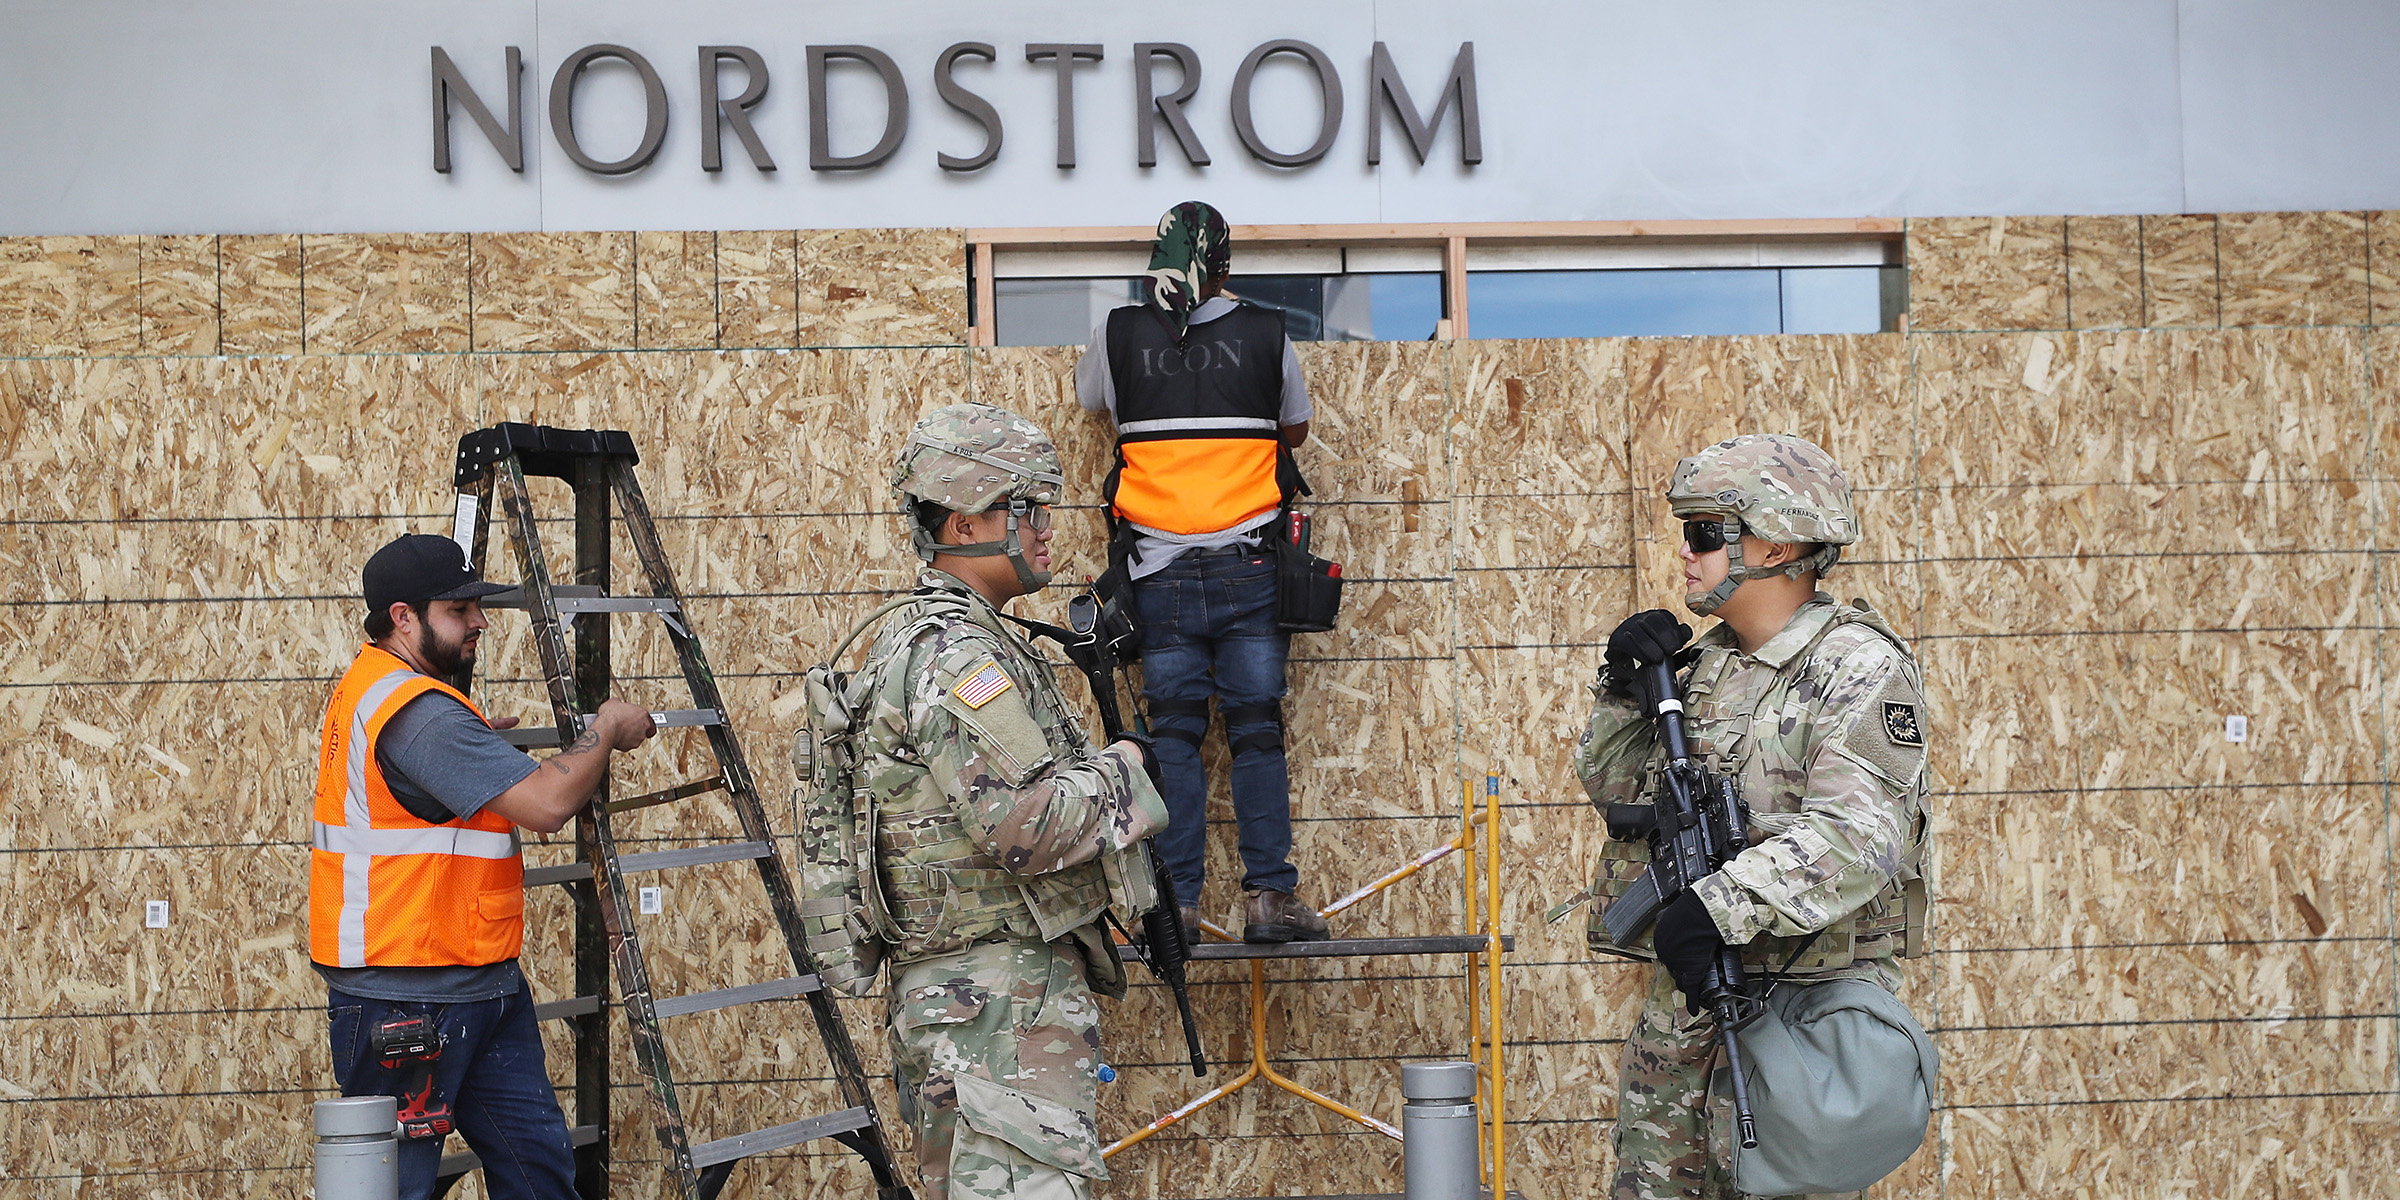 Nordstrom closes stores amid protests: 'Windows and merchandise can be replaced'